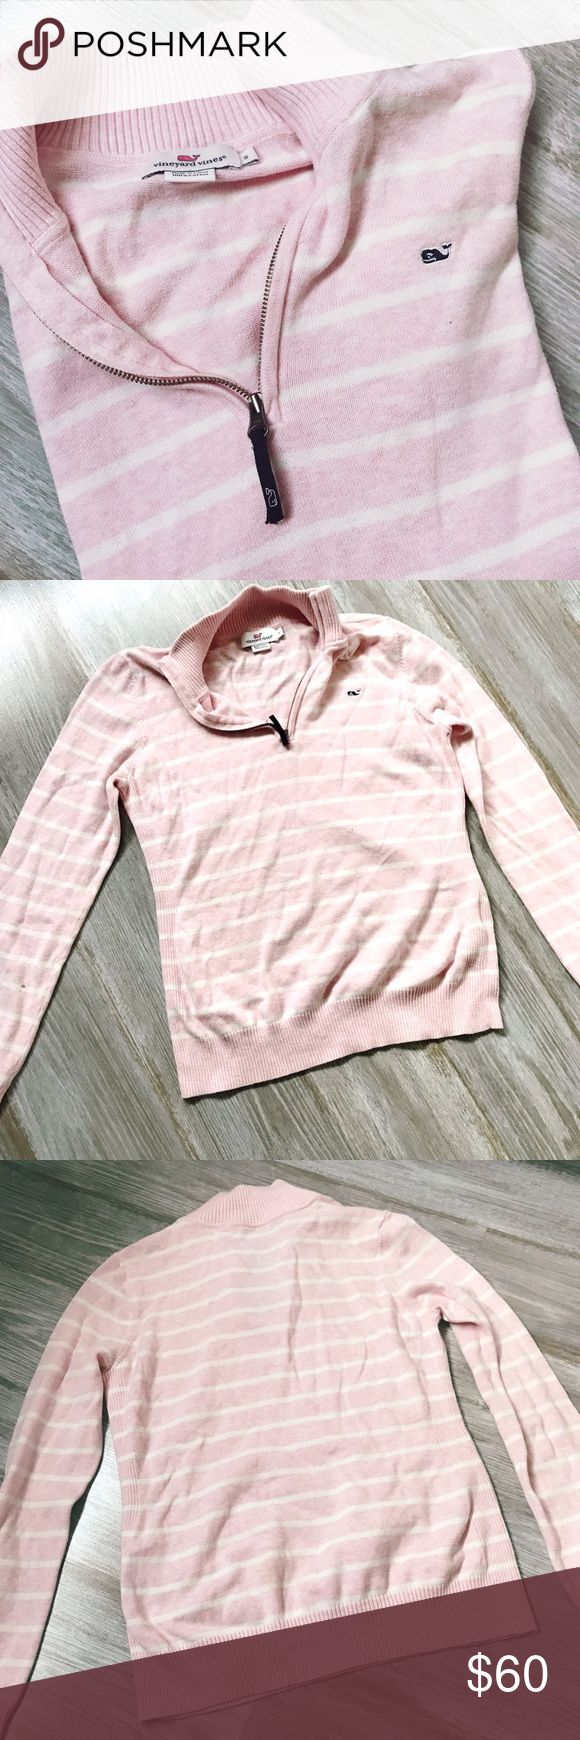 Vineyard Vines Cotton 1/4 Zip Sweater Pullover Vineyard Vines cotton quarter-zip in Pink with White Stripes. So soft and perfect for a wide range of temperatures. Features a collar, knit cuffs, and a knit hem. Size small and only worn twice! Vineyard Vines Sweaters